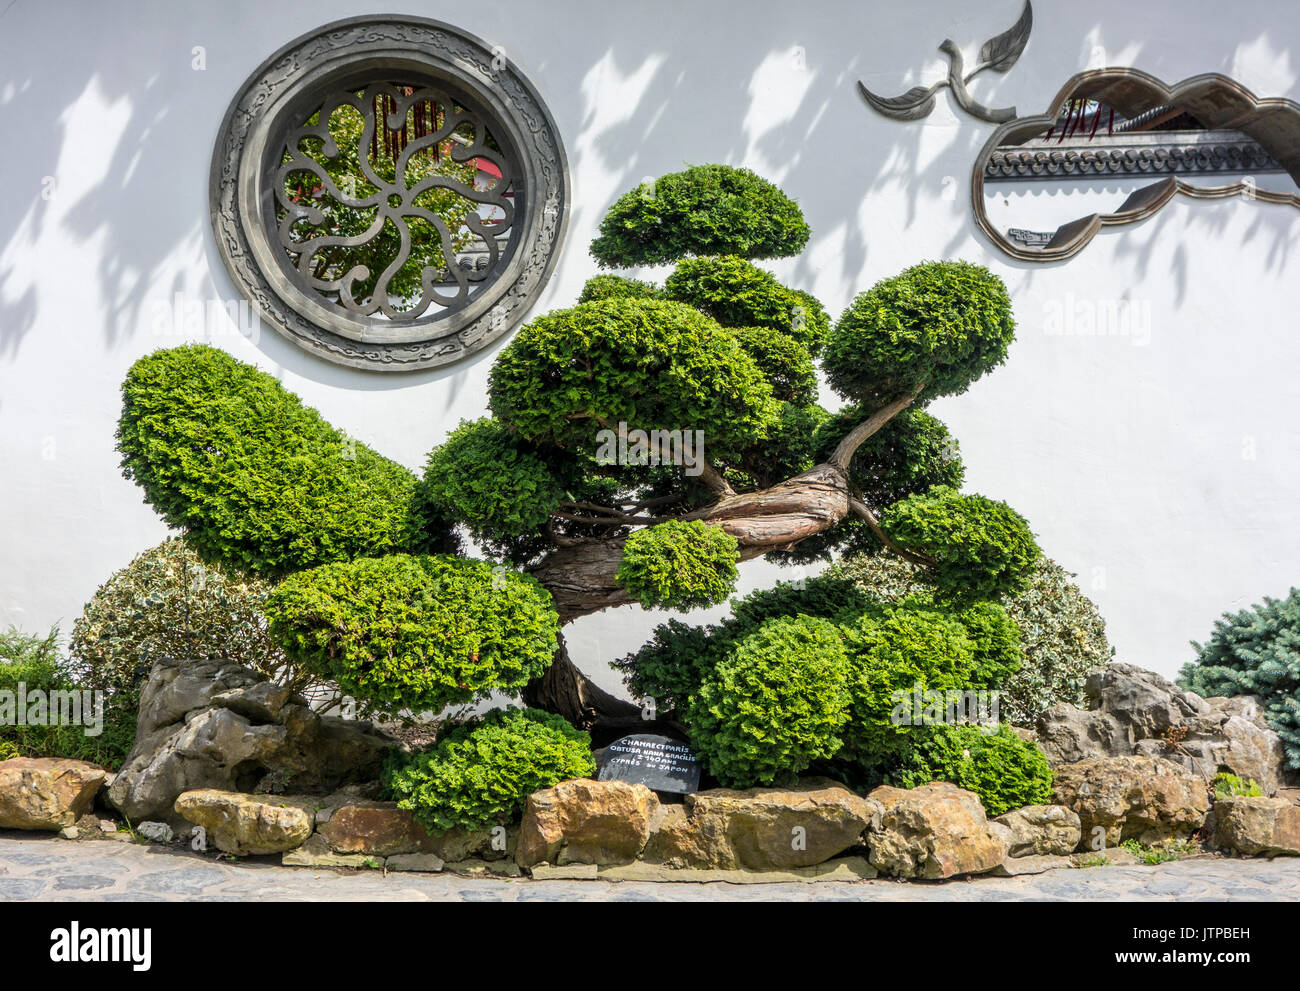 140 year old Hinoki cypress / hinoki false cypress / dwarf hinoki cypress bonsai tree Chamaecyparis obtusa Nana - Stock Image